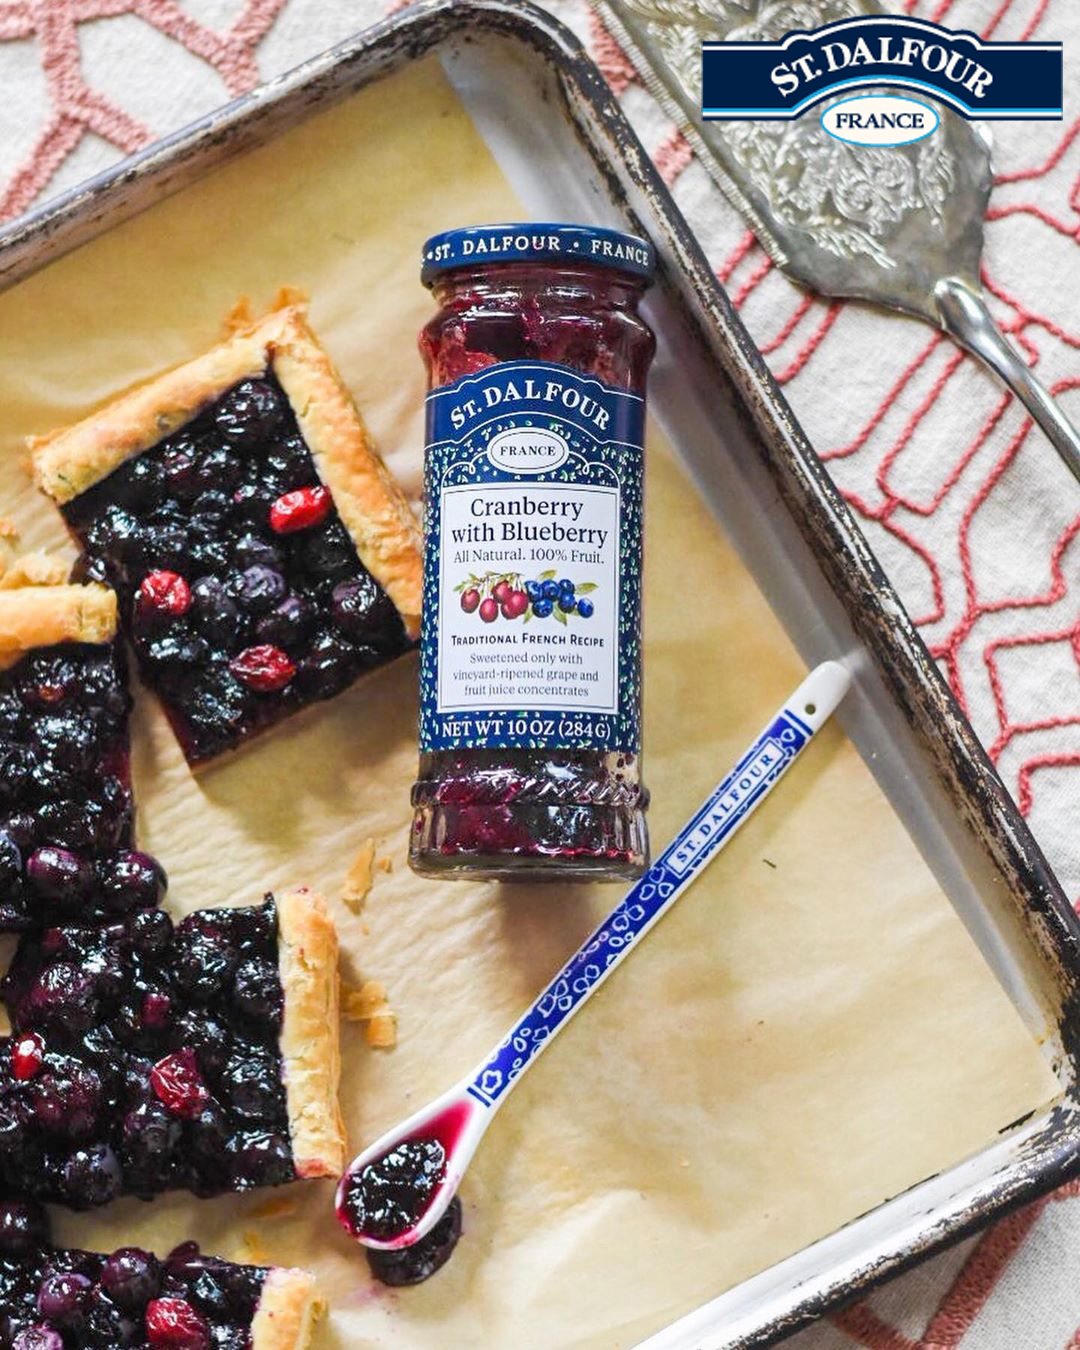 All-Natural French Fruit Preserve Range from St. Dalfour